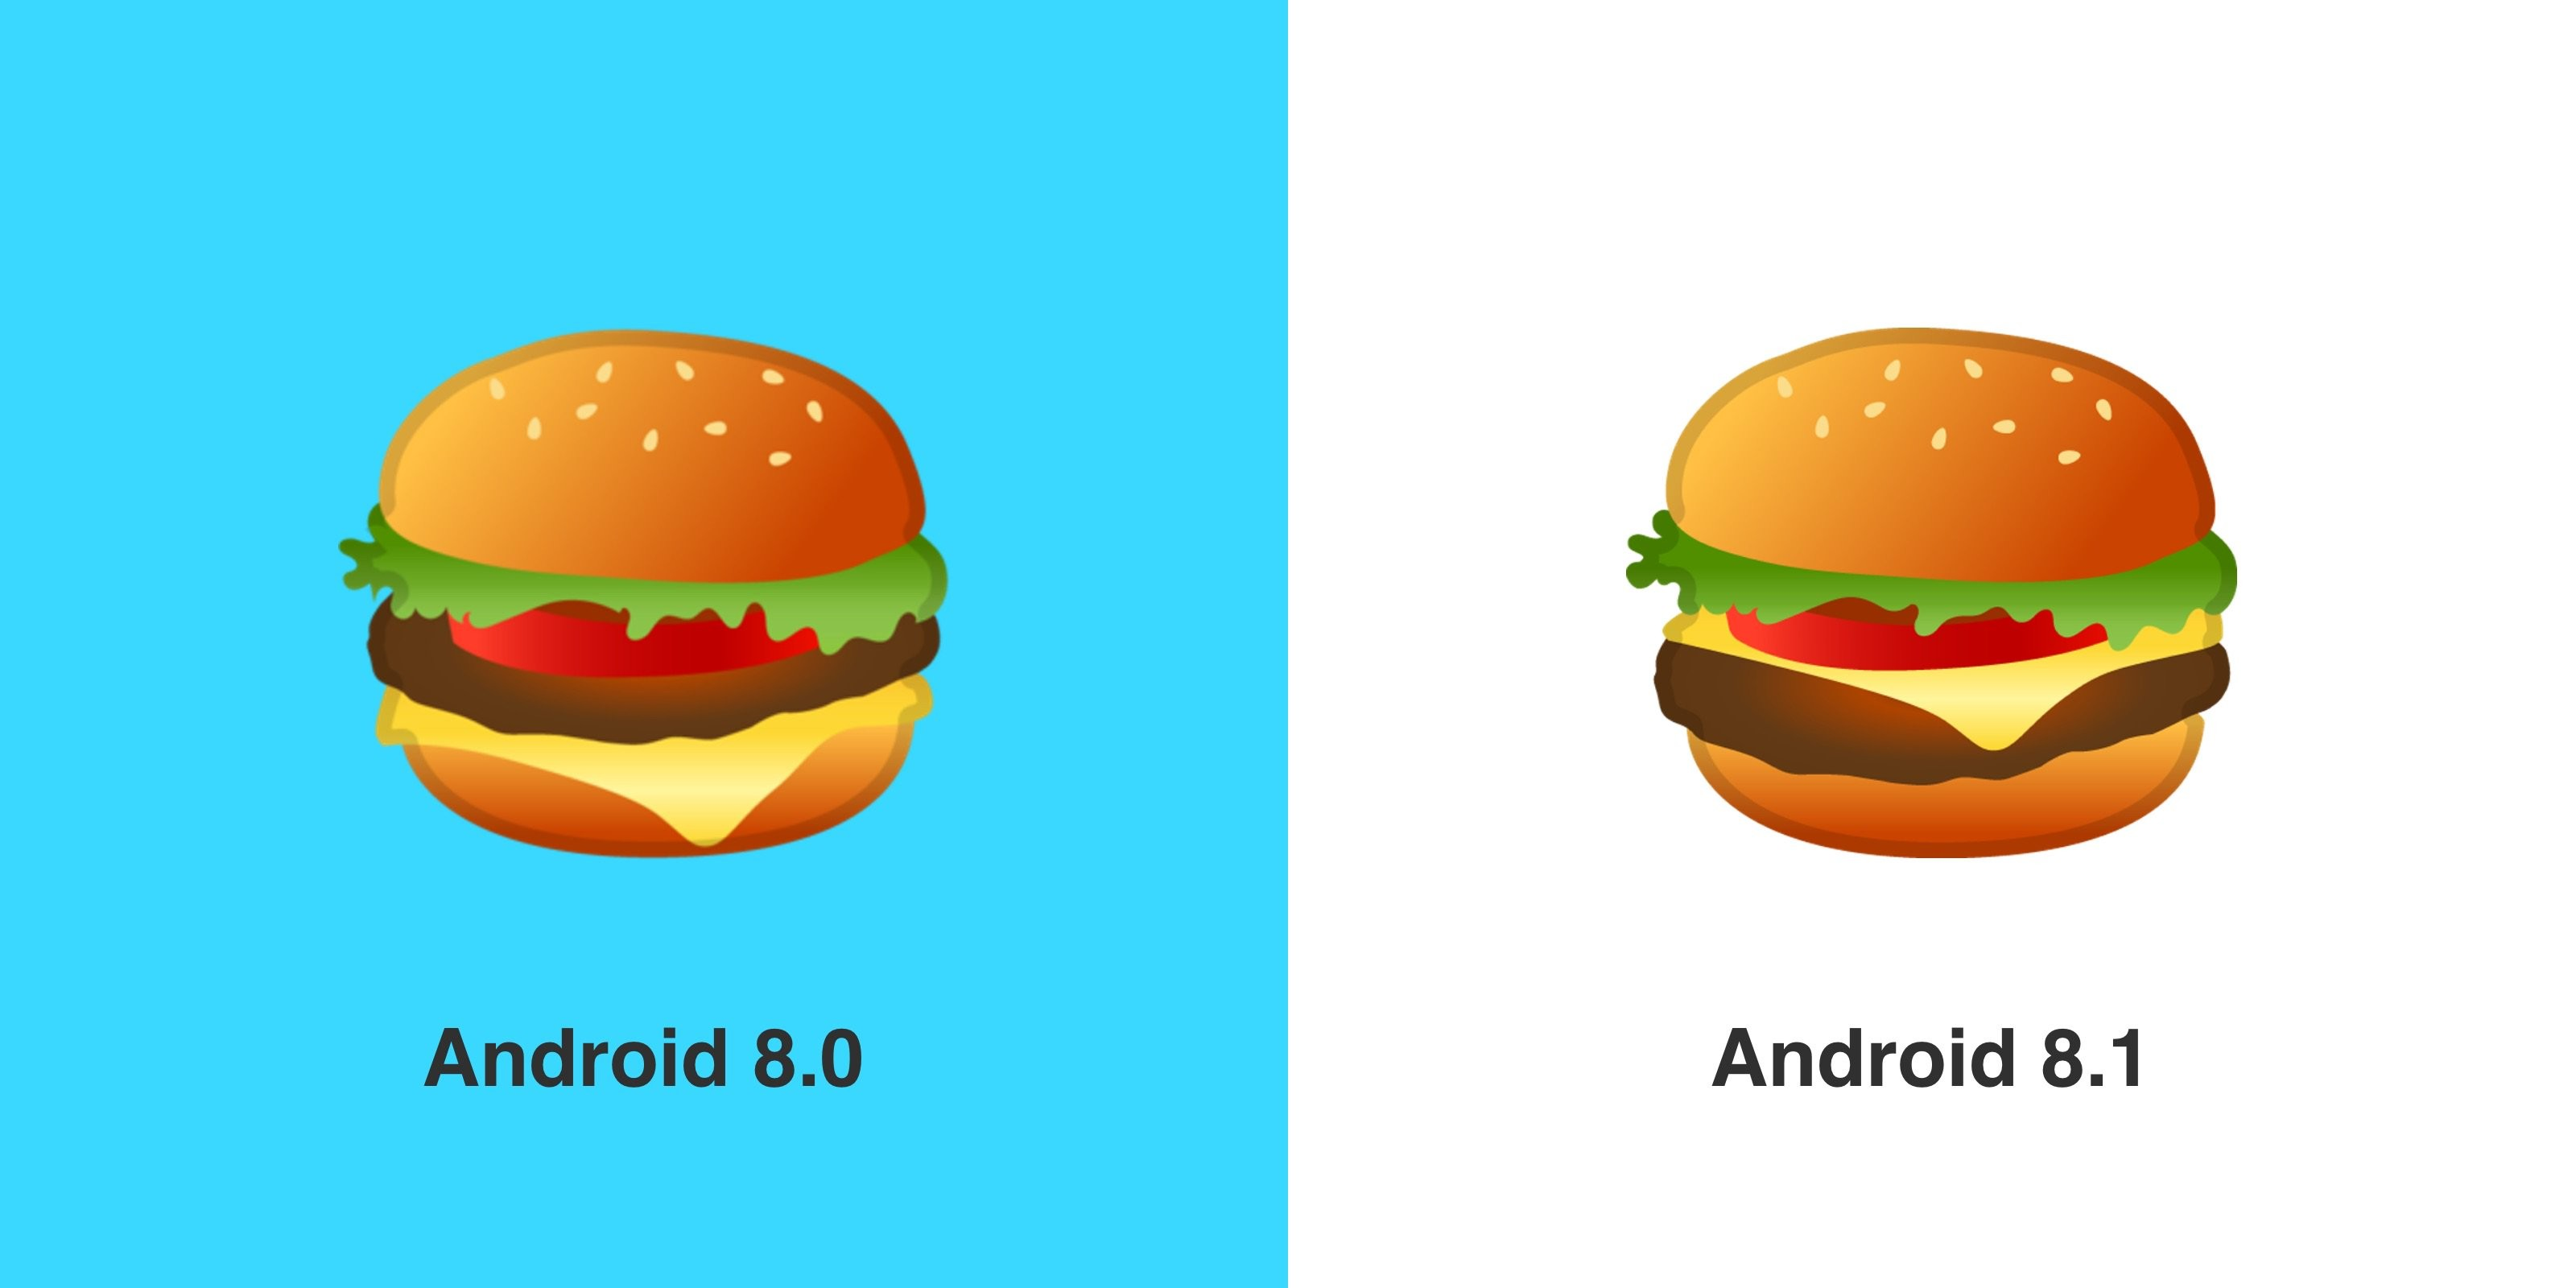 Google alters burger emoji, with cheese atop the patty